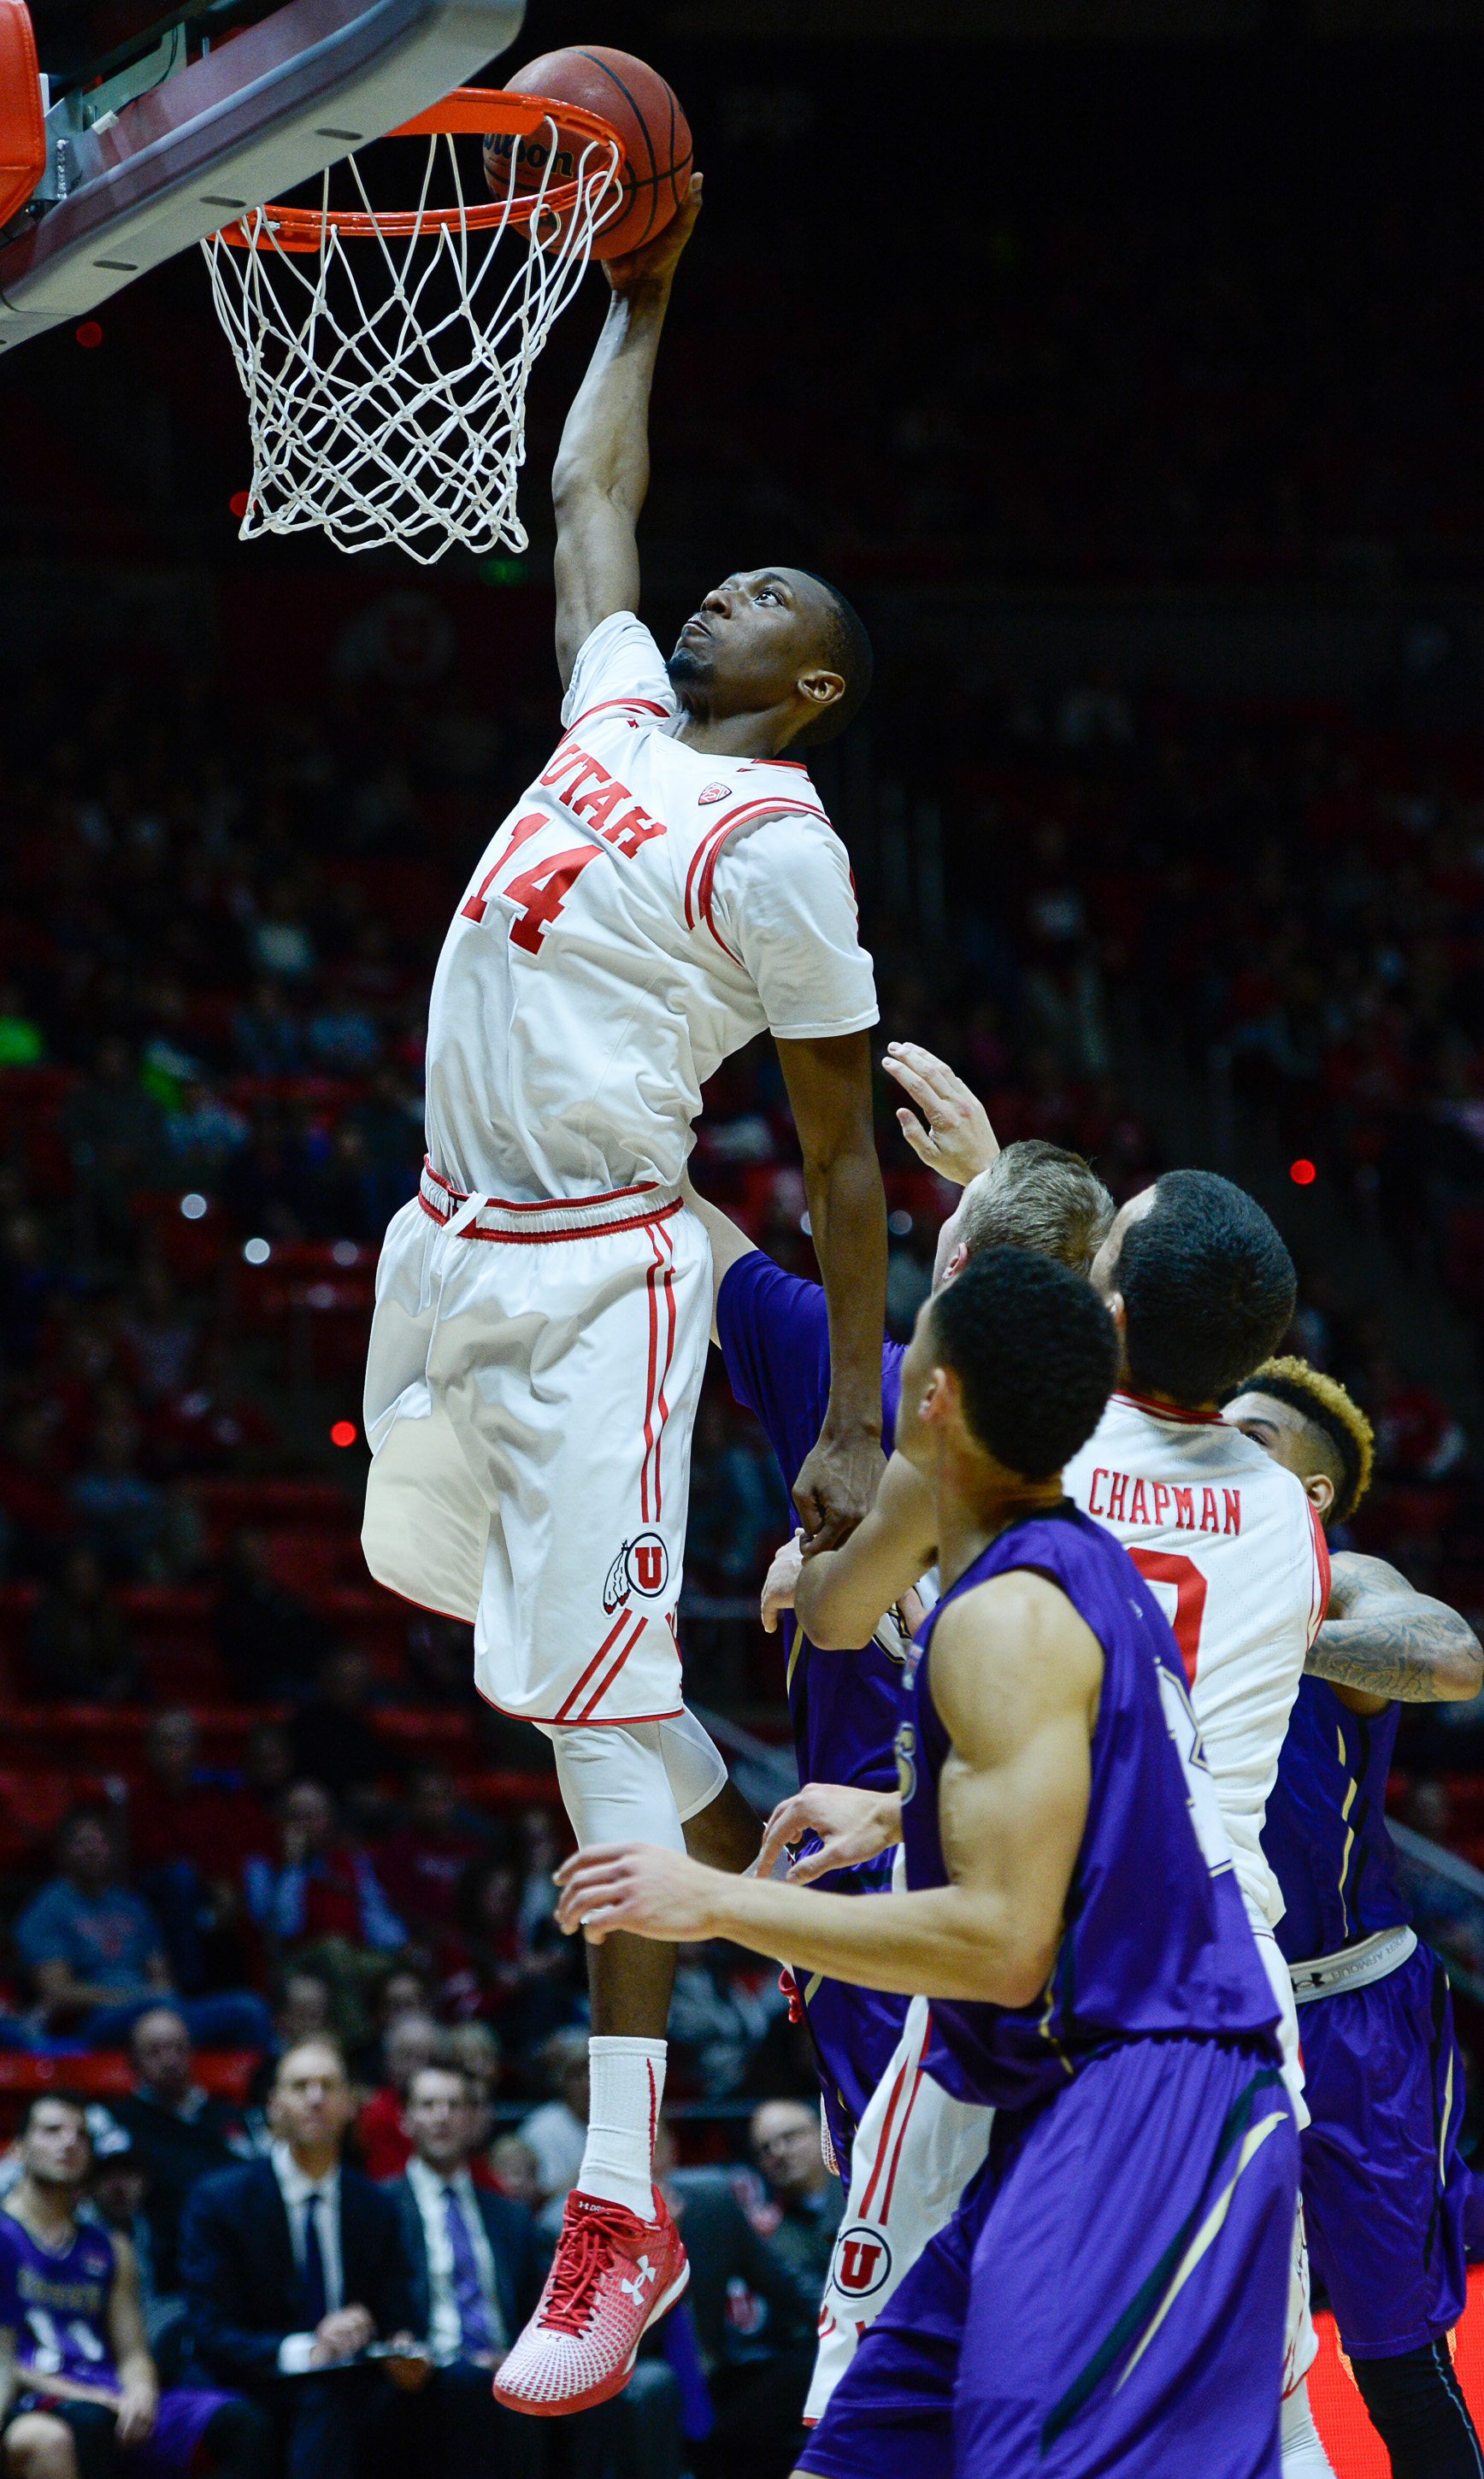 Utah forward Dakarai Tucker (14) tries for a dunk that bounces out against the College of Idaho during an NCAA college basketball game, Monday, Dec. 28, 2015 in Salt Lake City. (Francisco Kjolseth/The Salt Lake Tribune via AP) DESERET NEWS OUT; LOCAL TELE